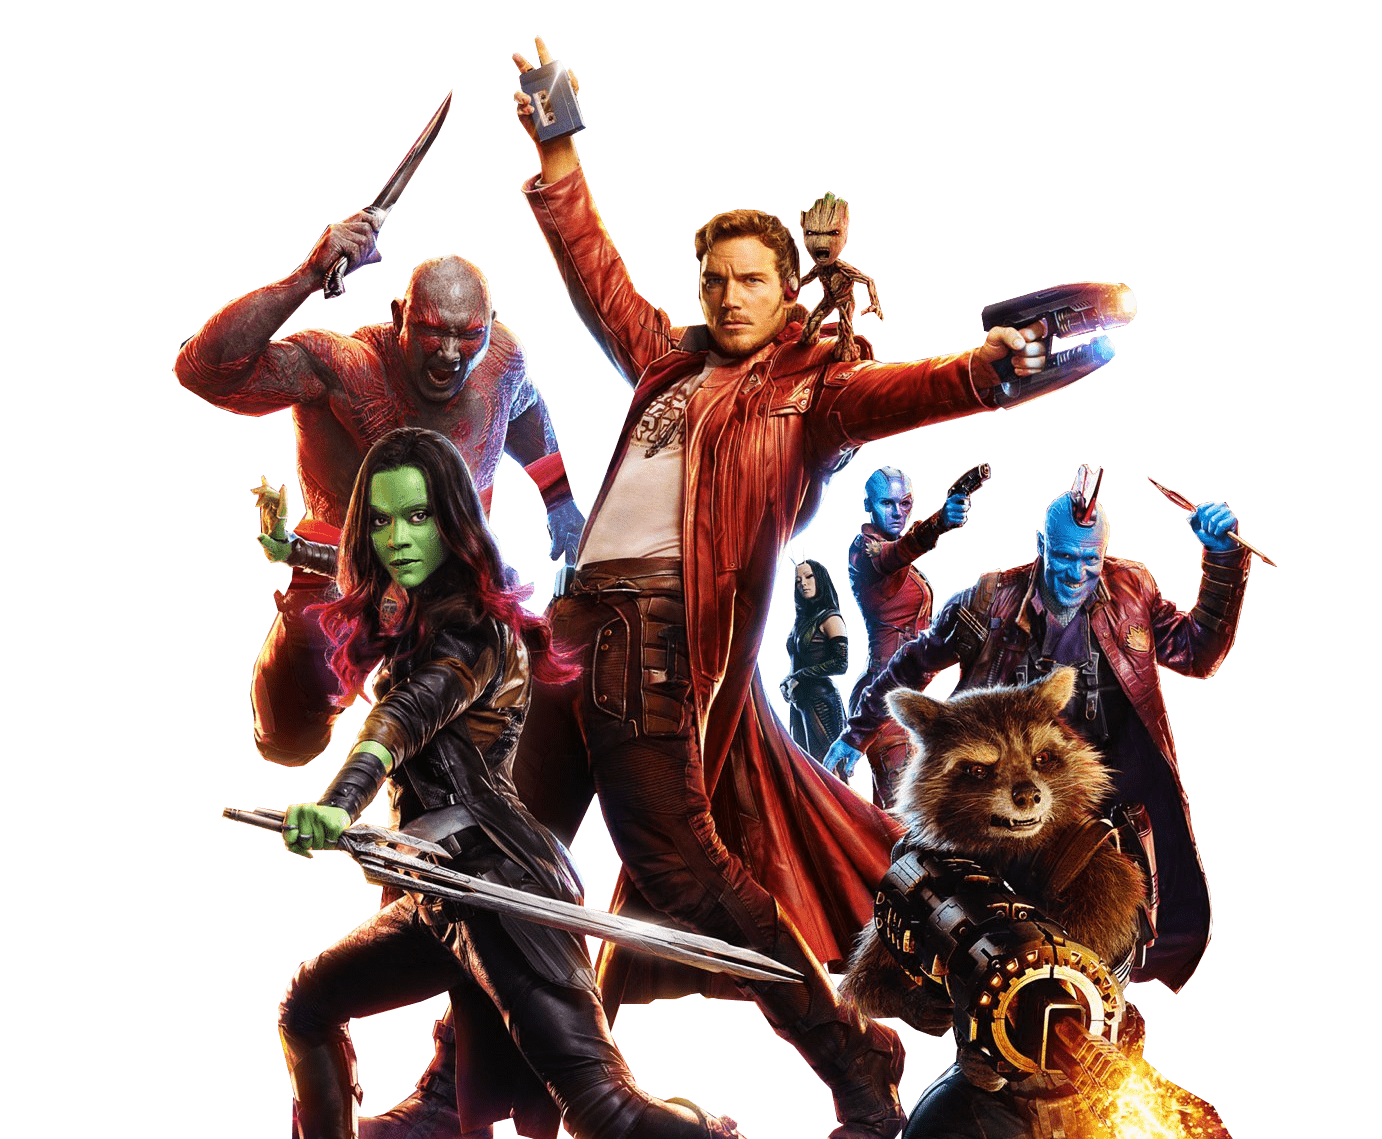 Guardians Of the Galaxy Group Image transparent PNG.